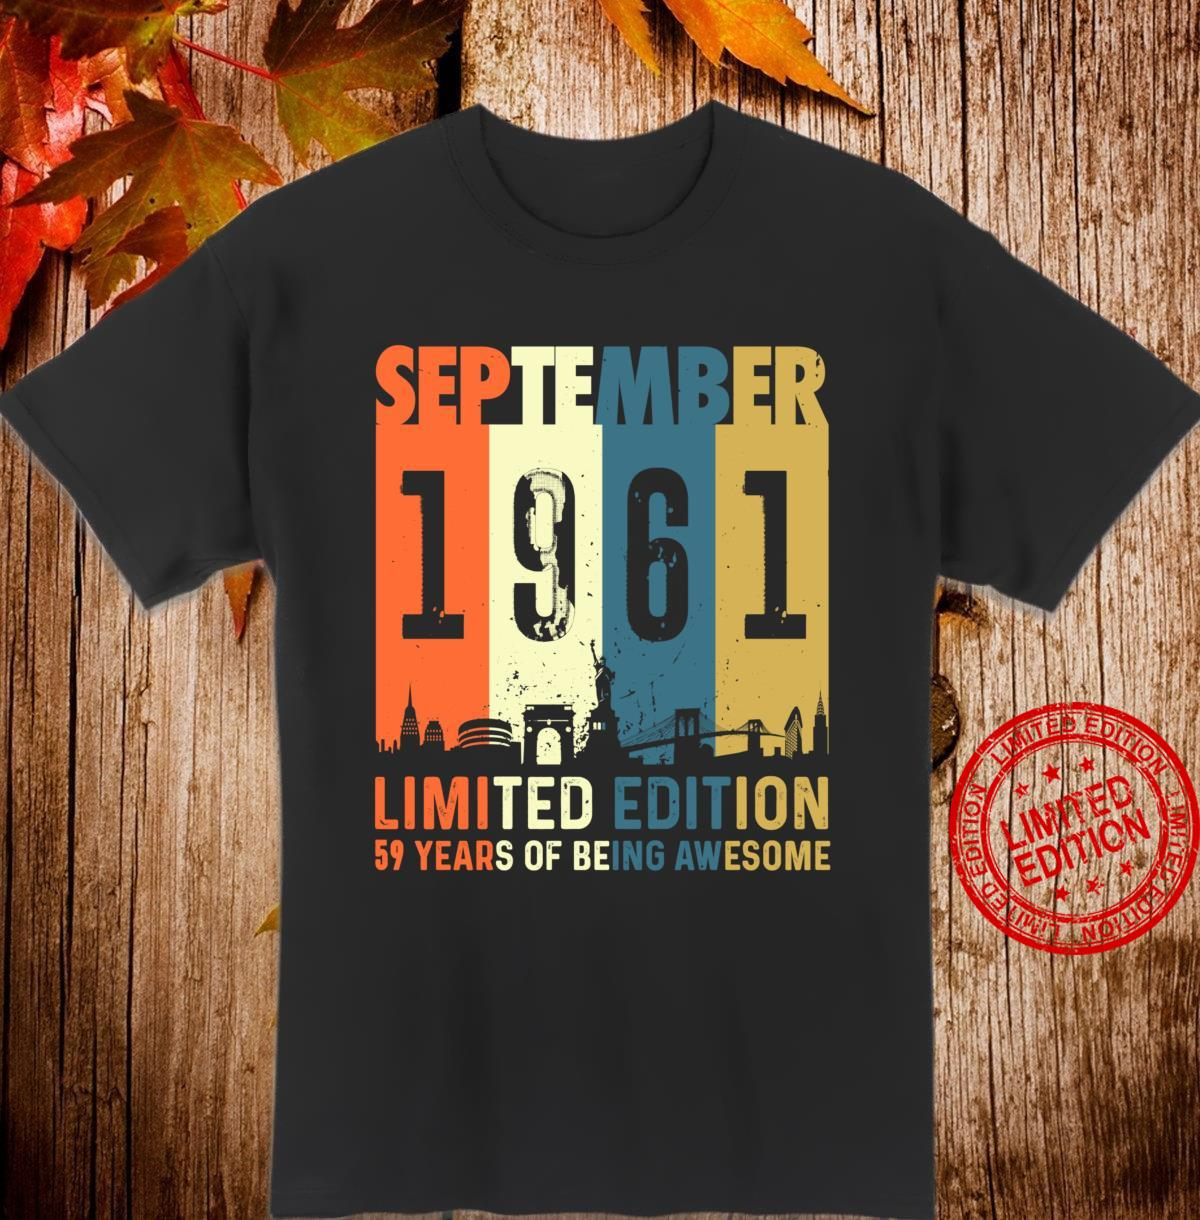 59 Limited edition, made September 1961 59th Birthday Shirt